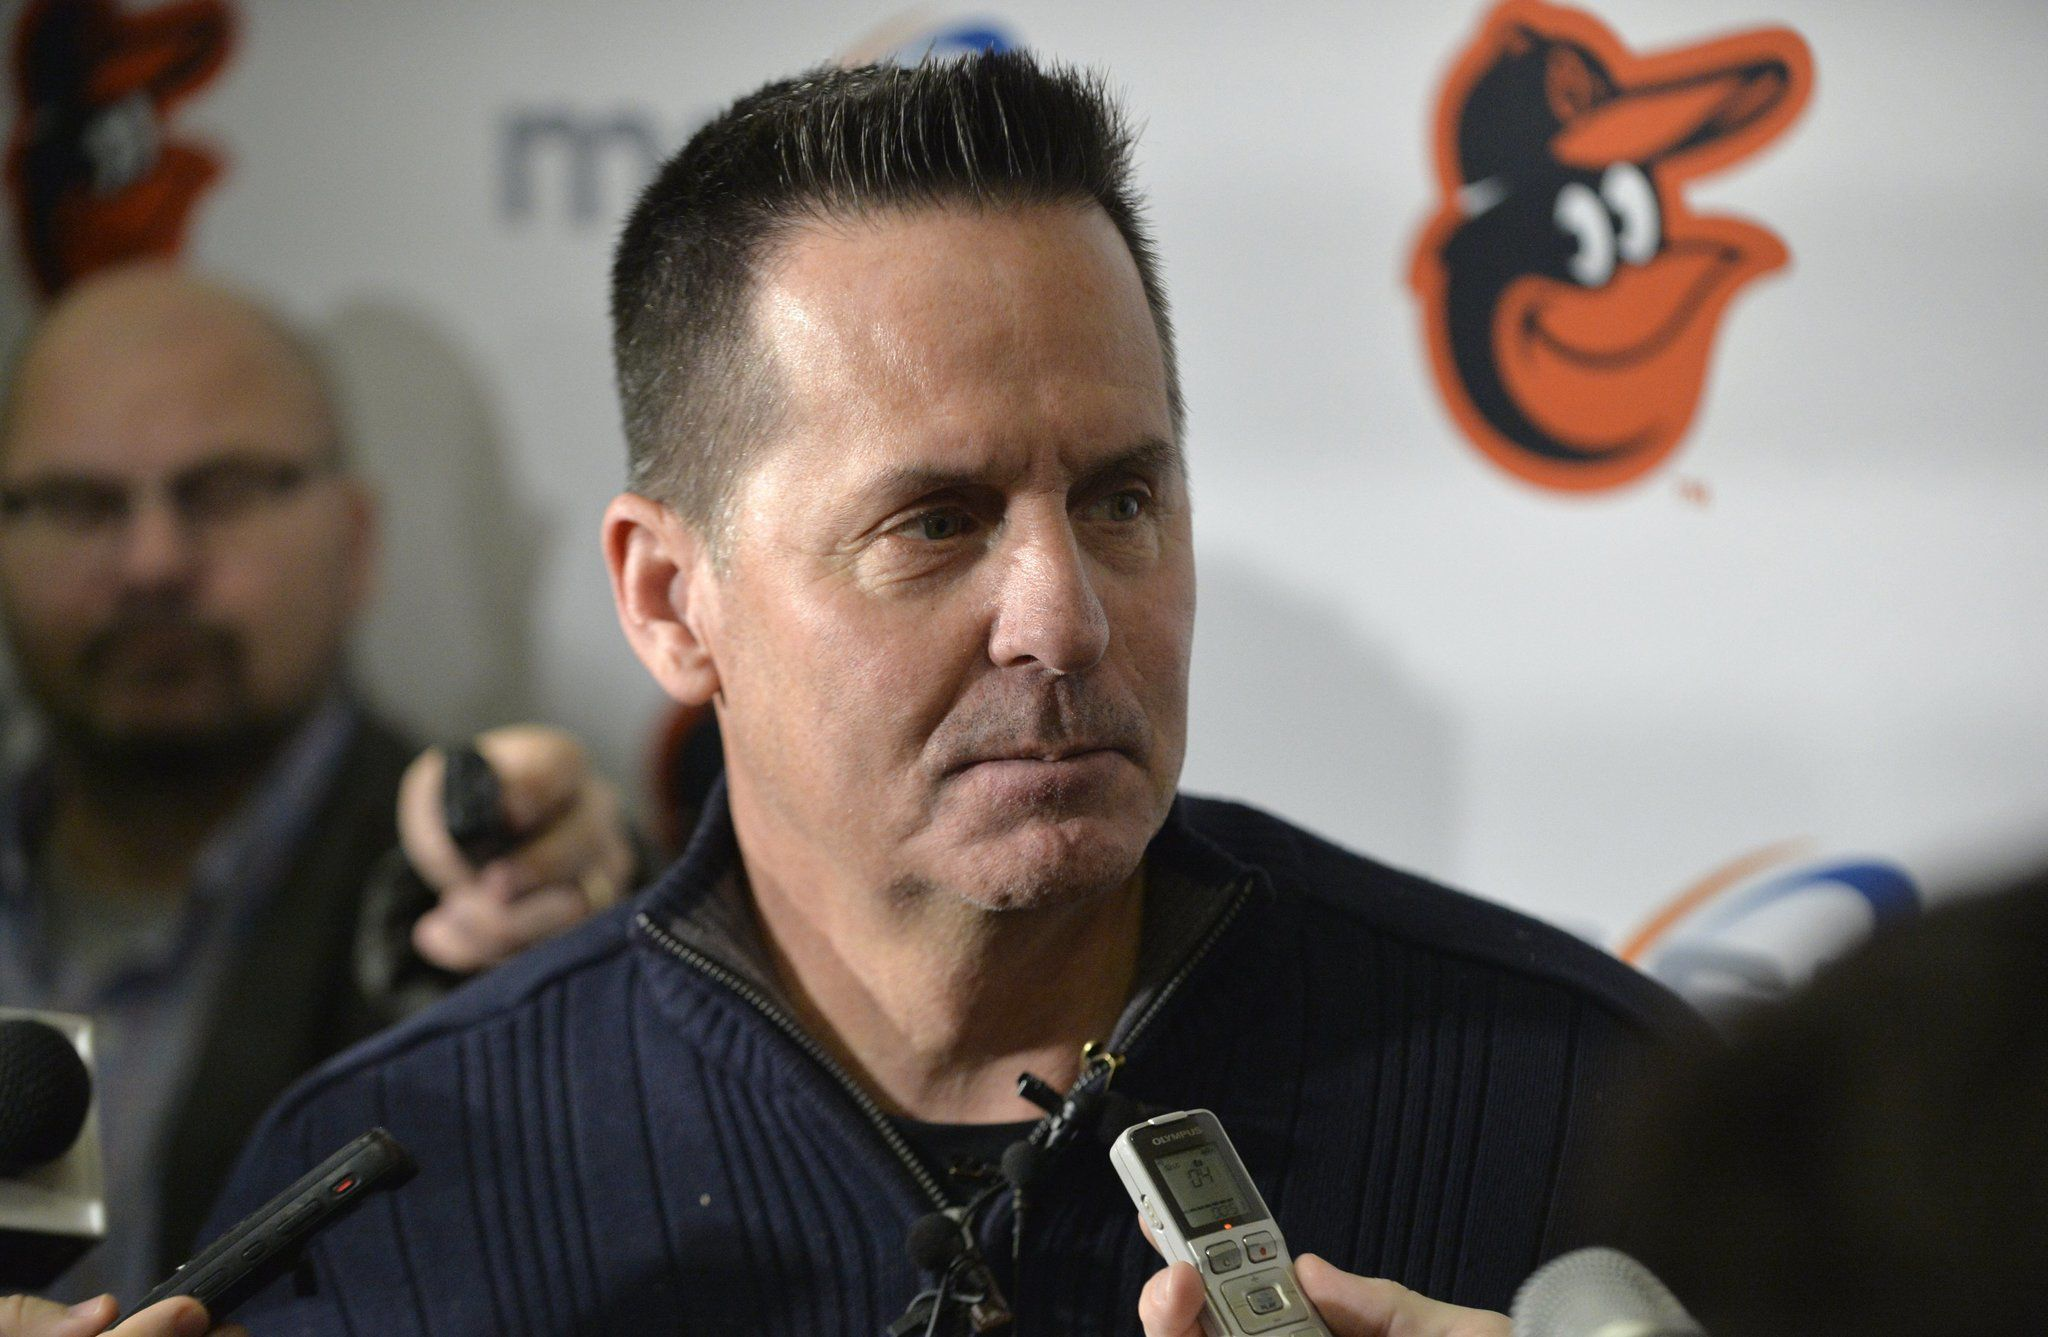 Orioles hitting coach Don Long not returning in 2022; Triple-A Norfolk Tides manager Gary Kendall out after 2 seasons